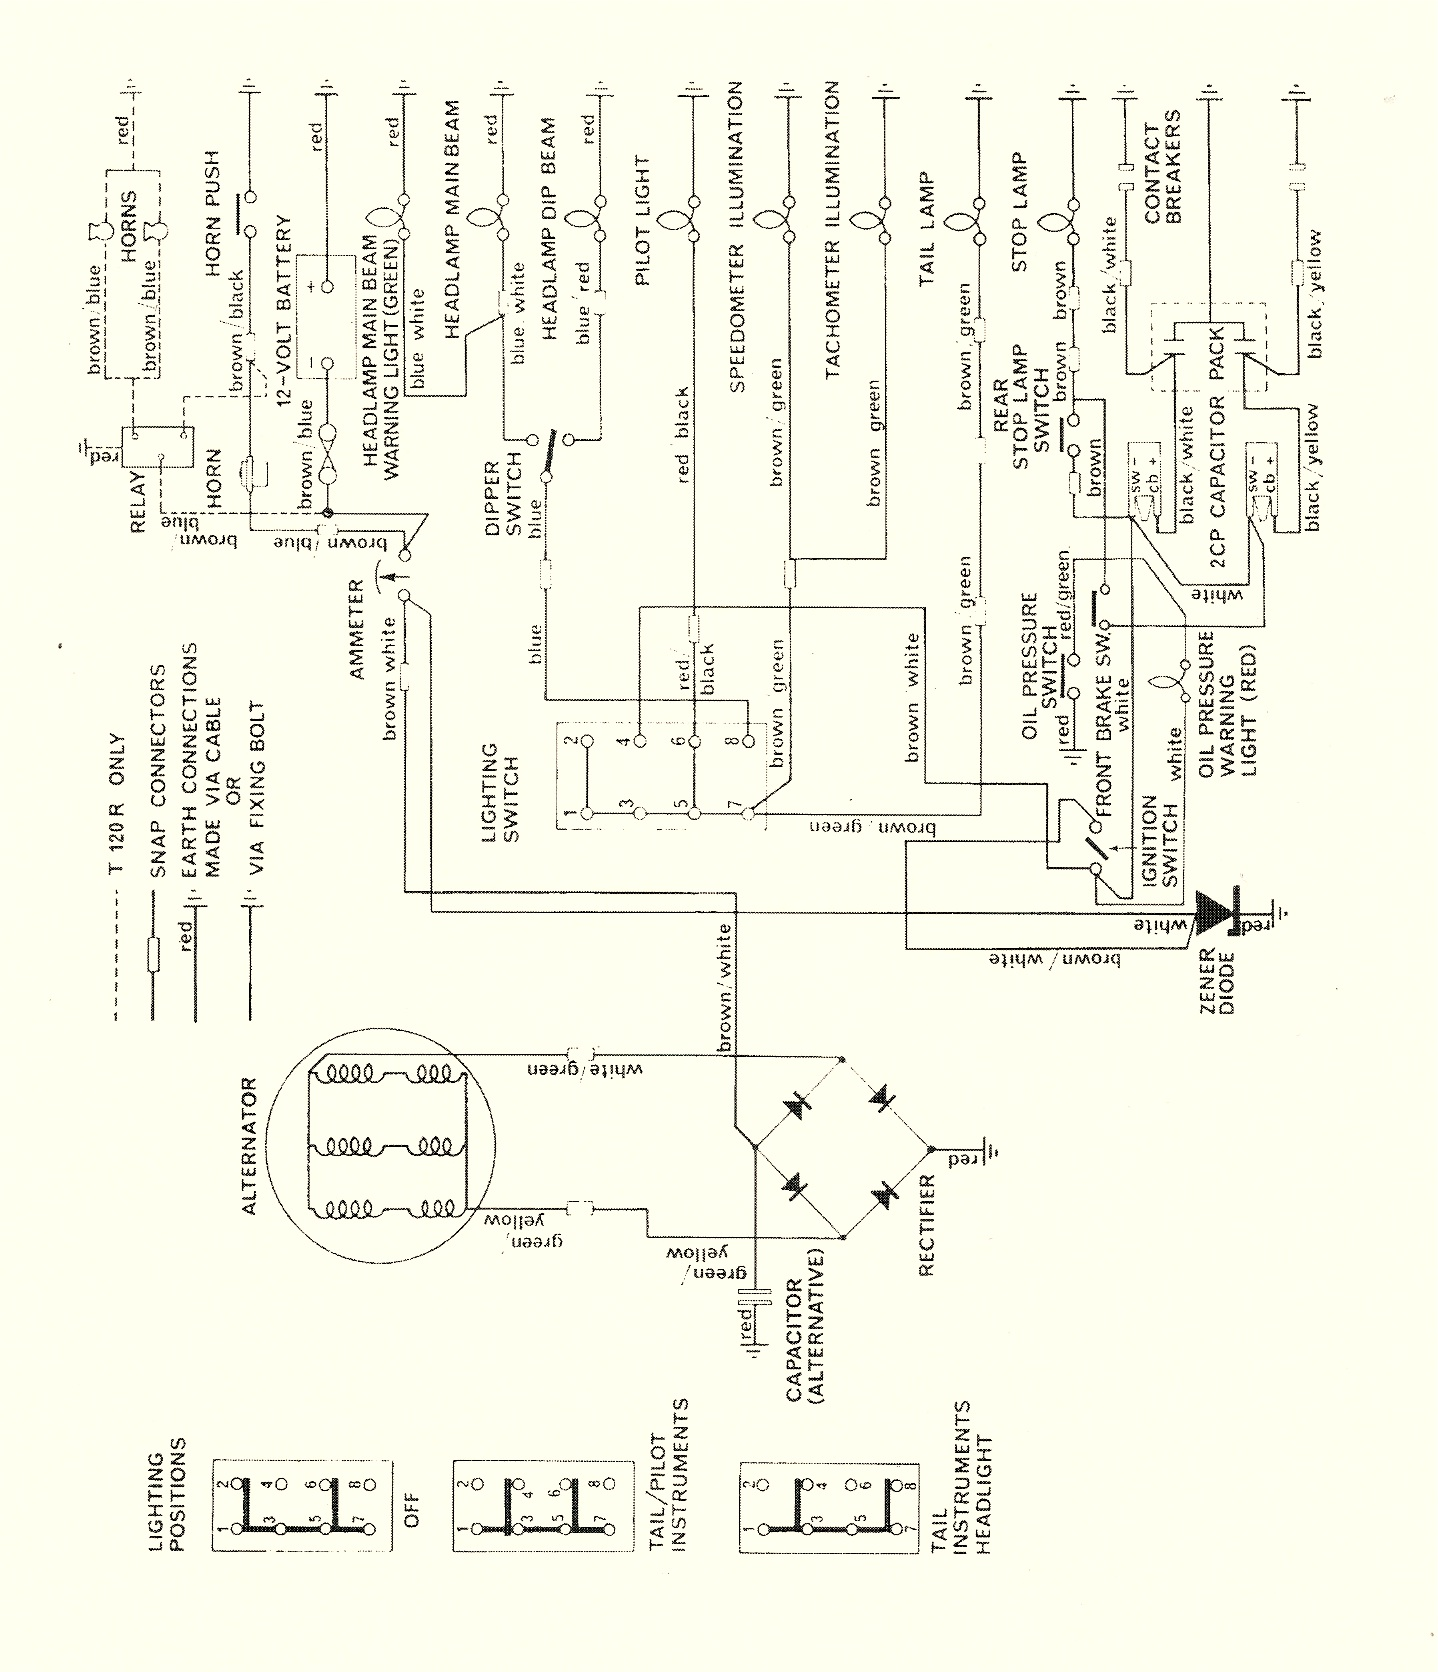 triumph bonneville engine diagram schema wiring diagram 2010 Fatboy Wiring-Diagram 1969 triumph bonneville engine diagram wiring diagram triumph tiger engine diagram 1969 triumph bonneville engine diagram